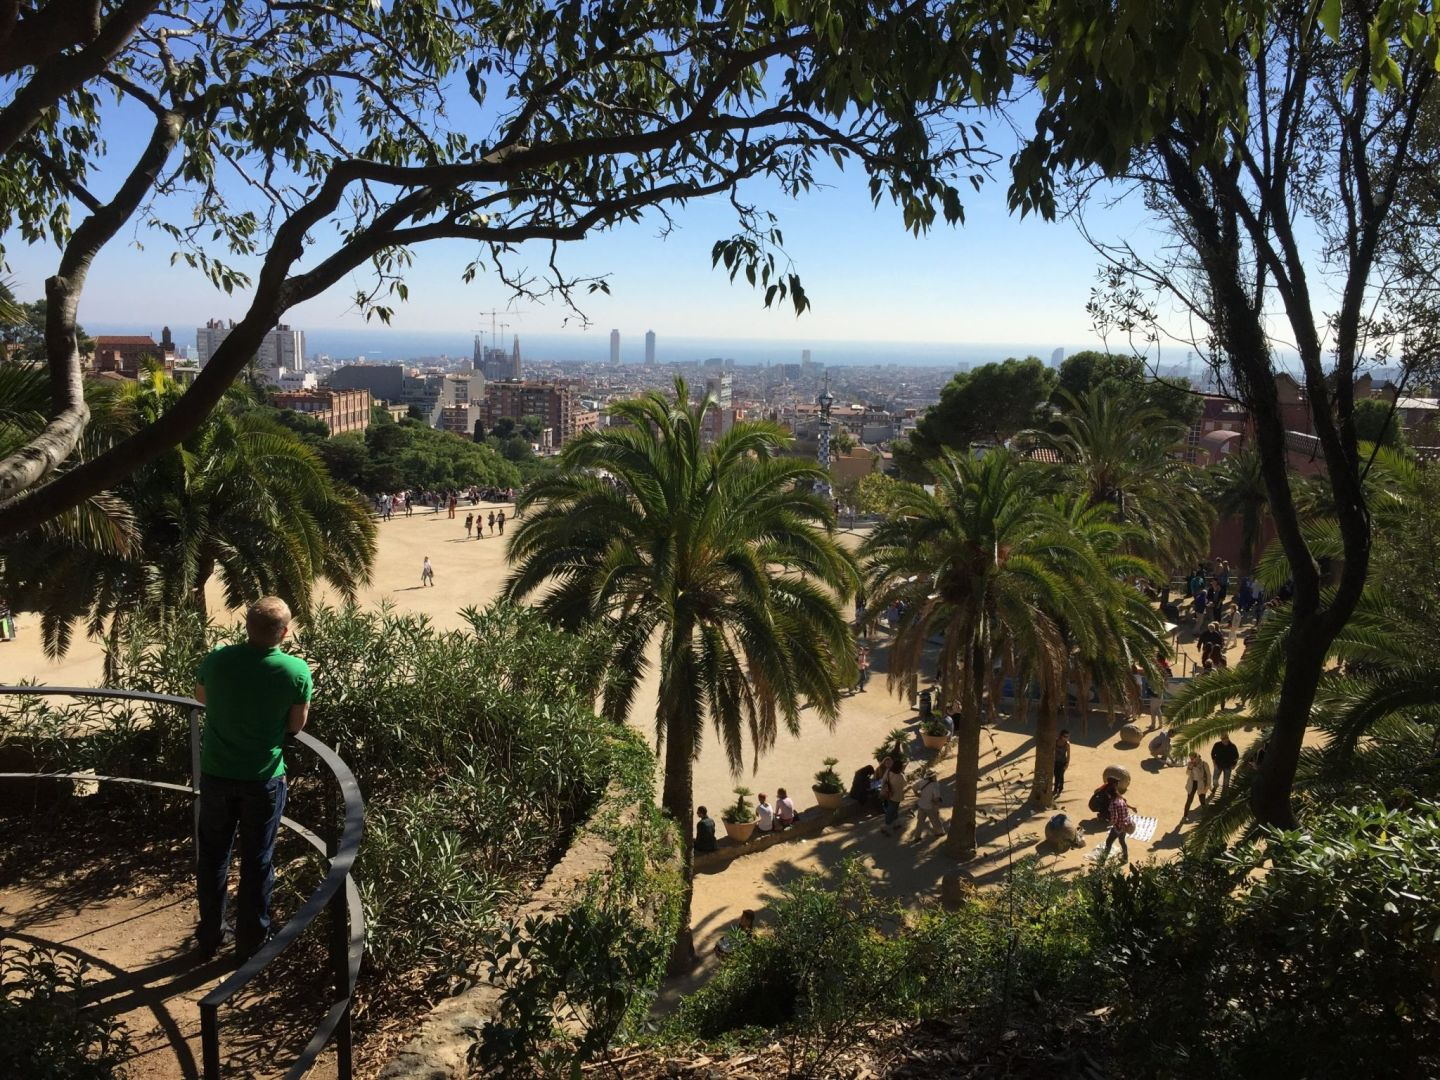 Views over Parc Guell, Barcelona